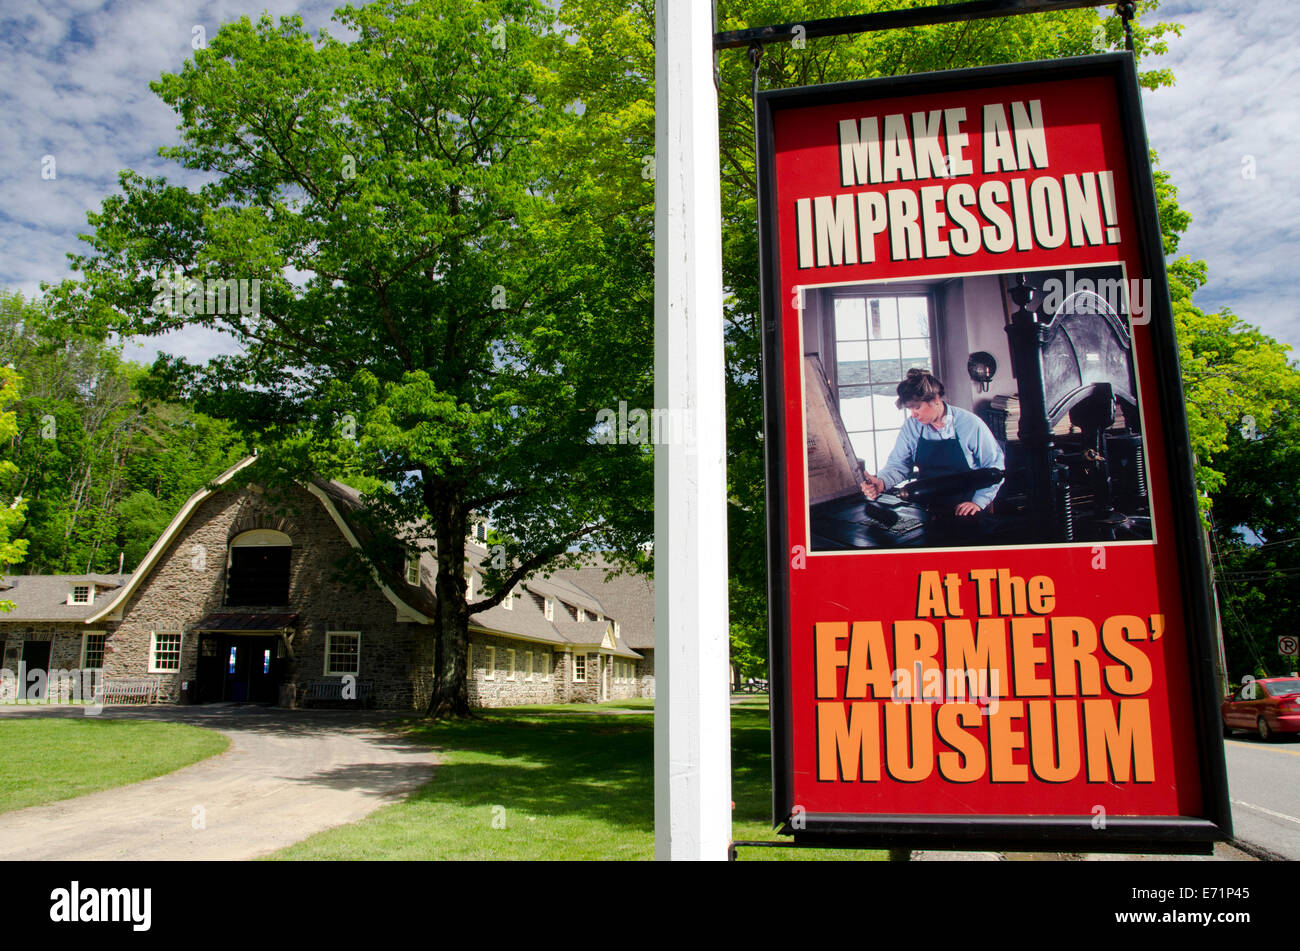 USA, New York, Cooperstown, Farmers' Museum. Open-air museum. The Creamery, original Fenimore Farm Building. - Stock Image